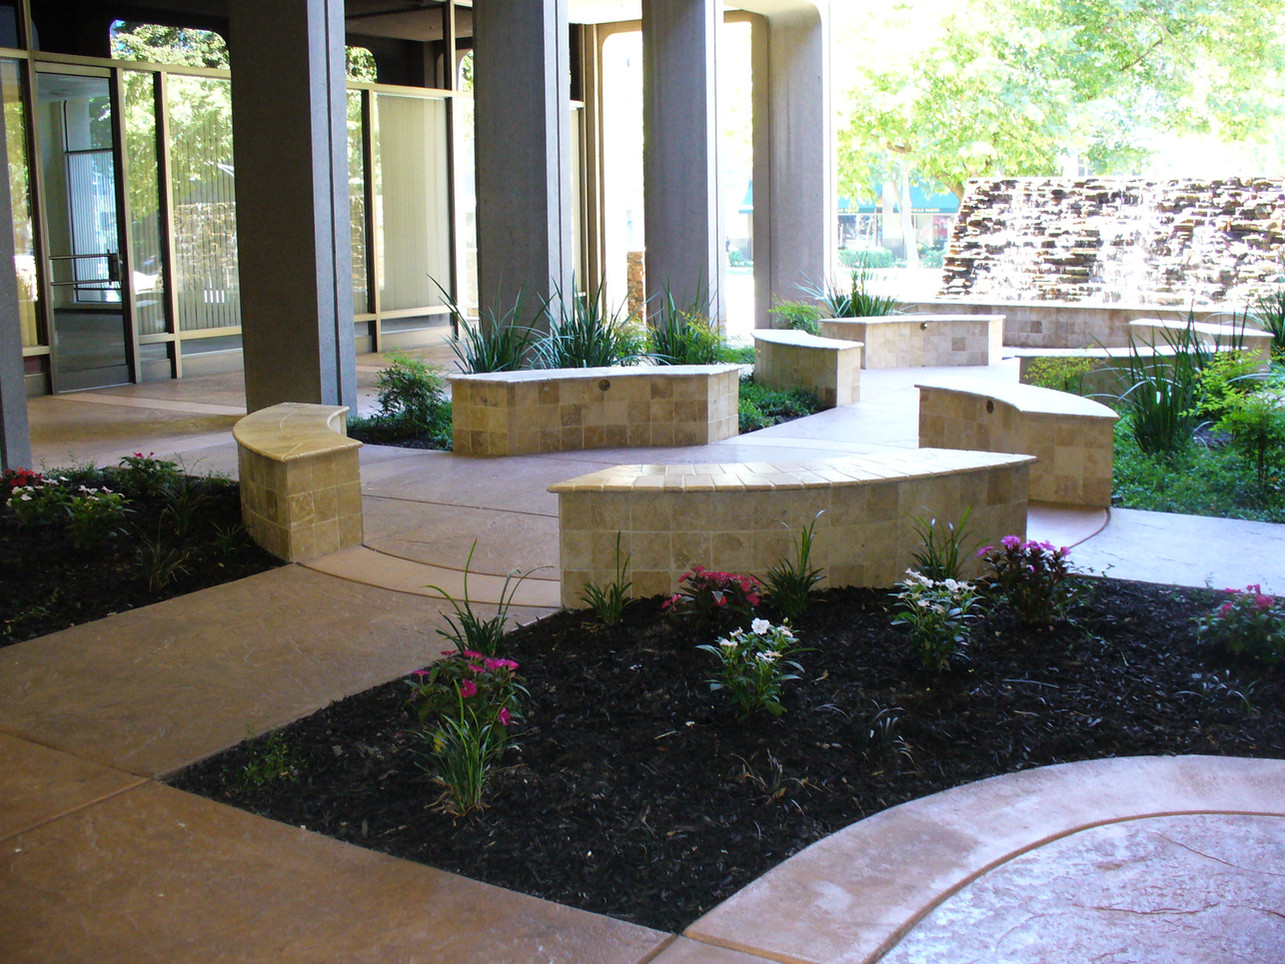 Pictures of courtyard.jpg